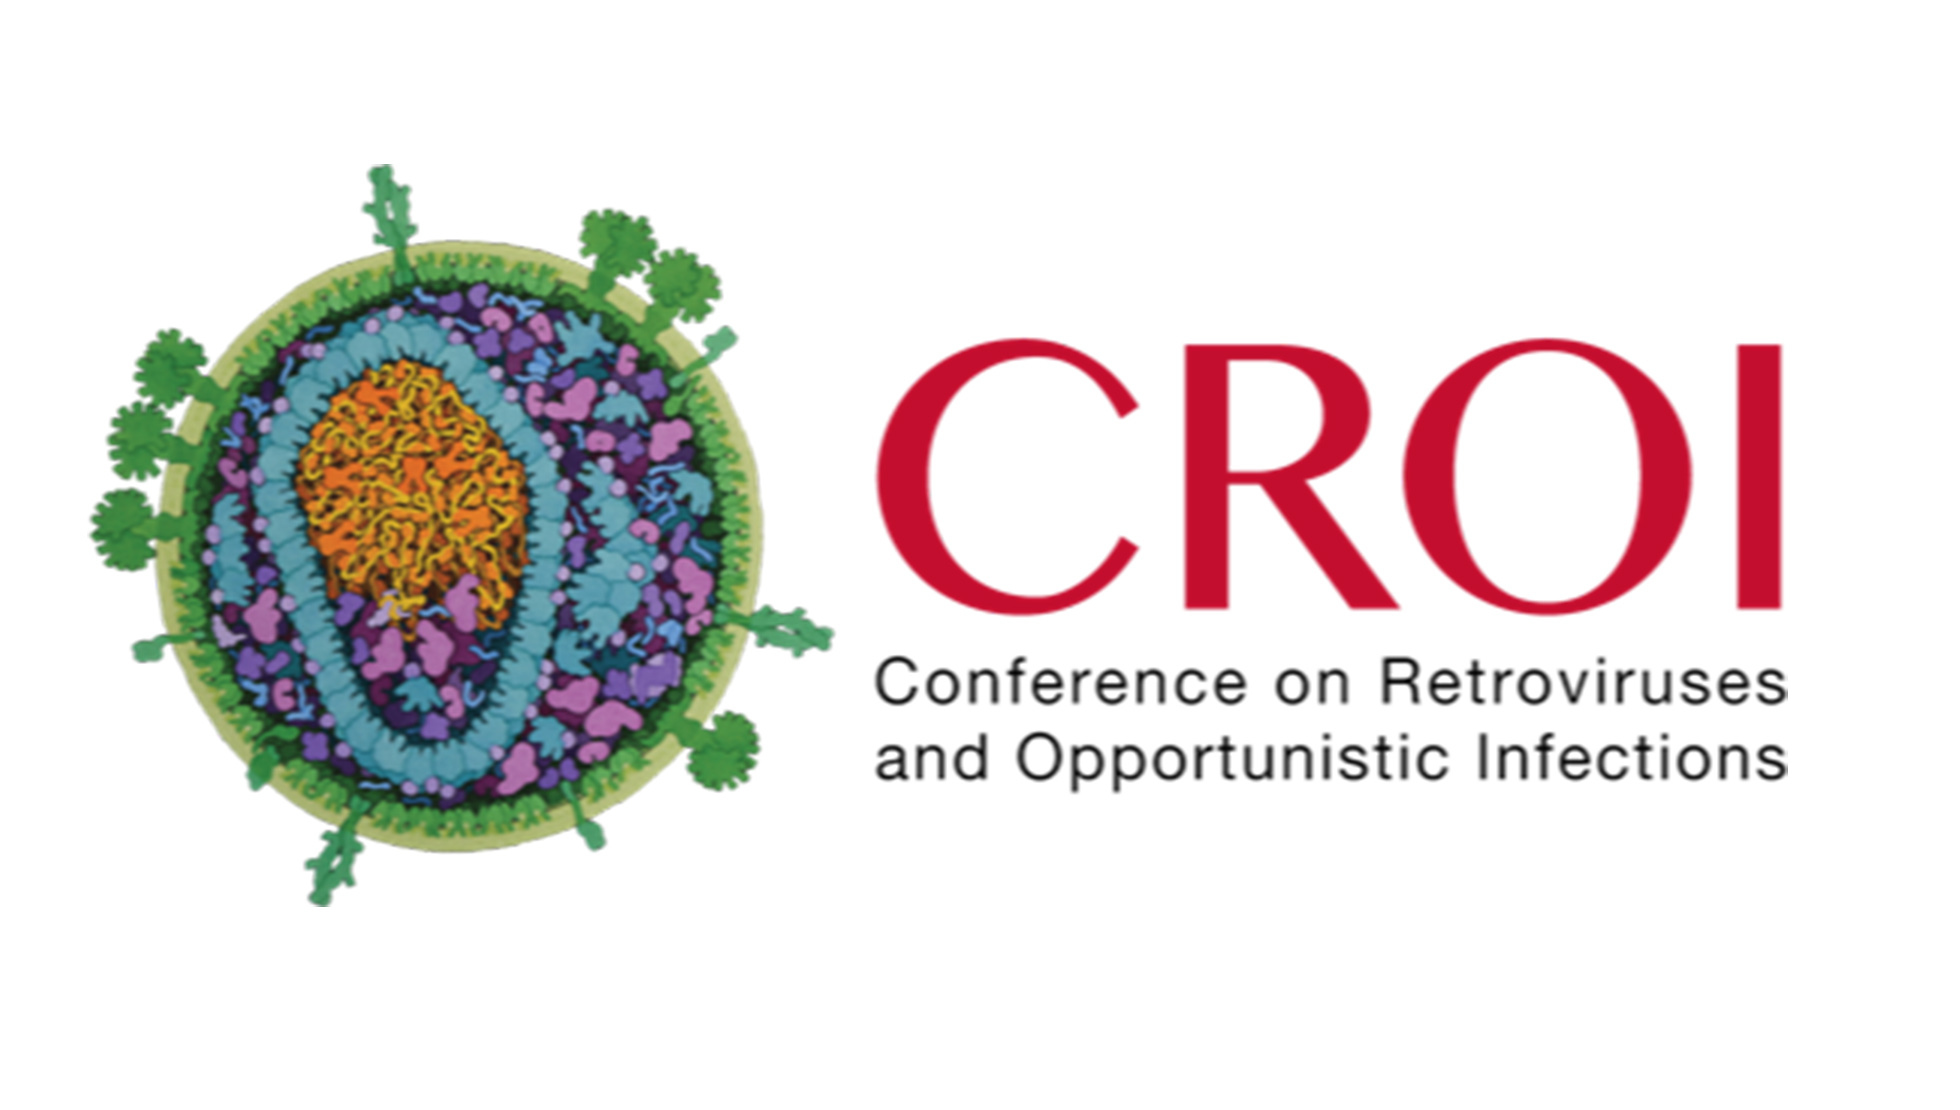 News from the CROI2021 conference: Osteoporosis, mental health and more studies on HIV and Covid-19